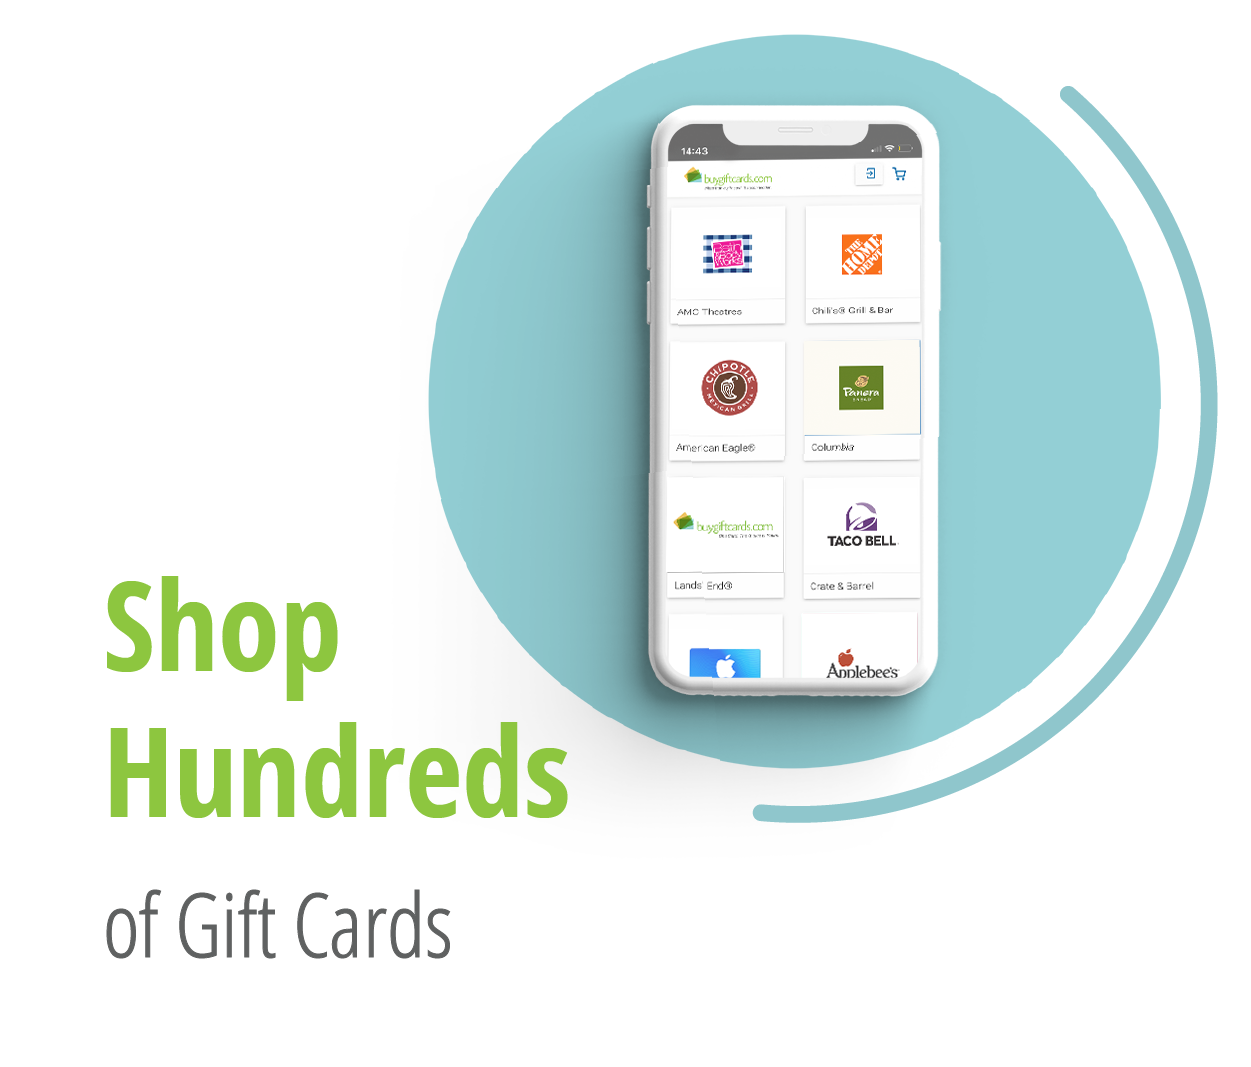 Shop Hundreds of Gift Cards